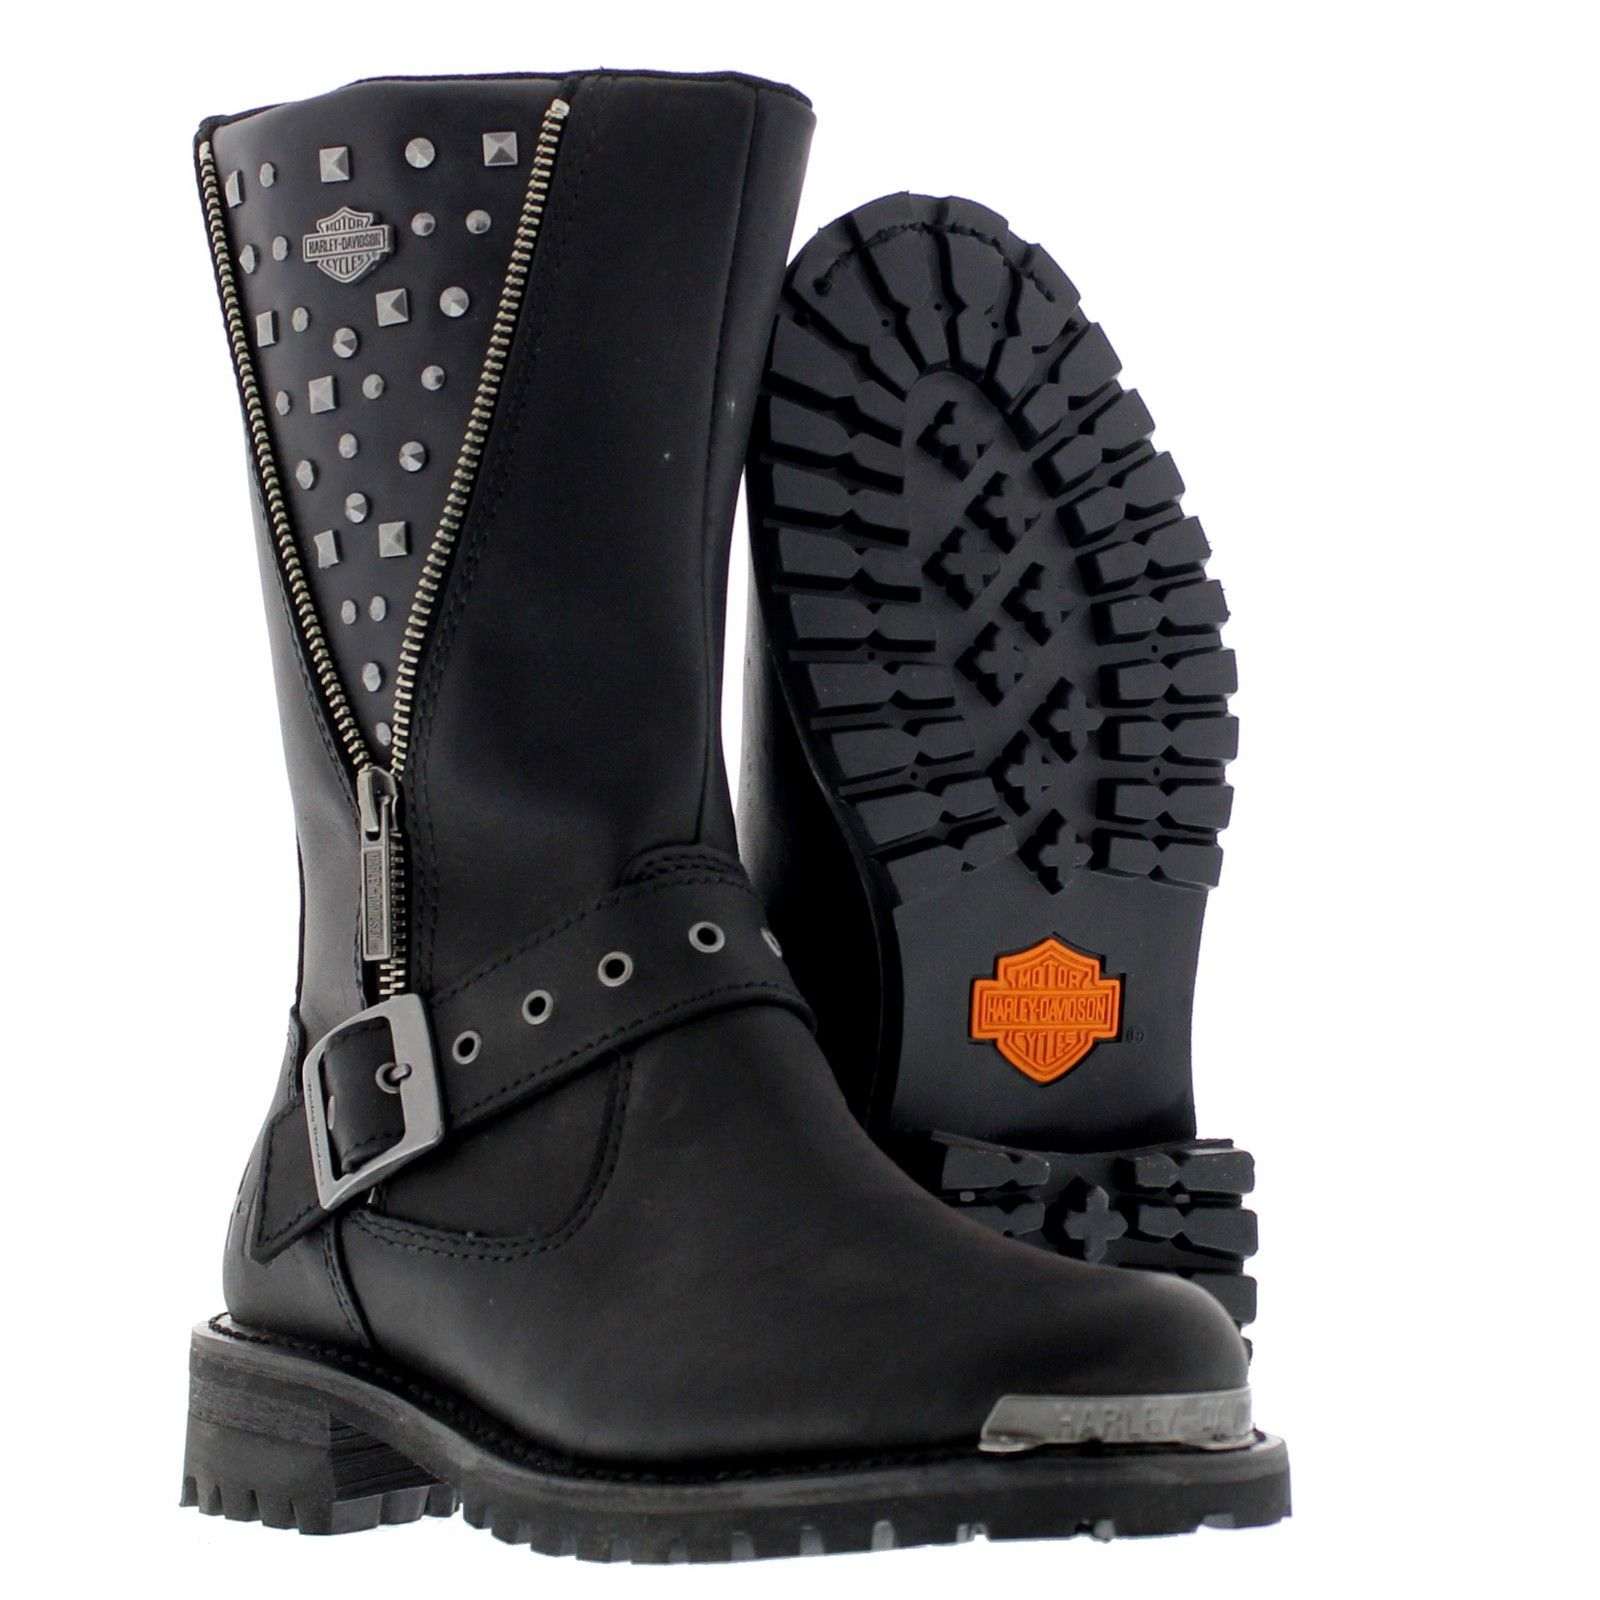 1179dc4c1b24 harley davidson boots for women - Google Search